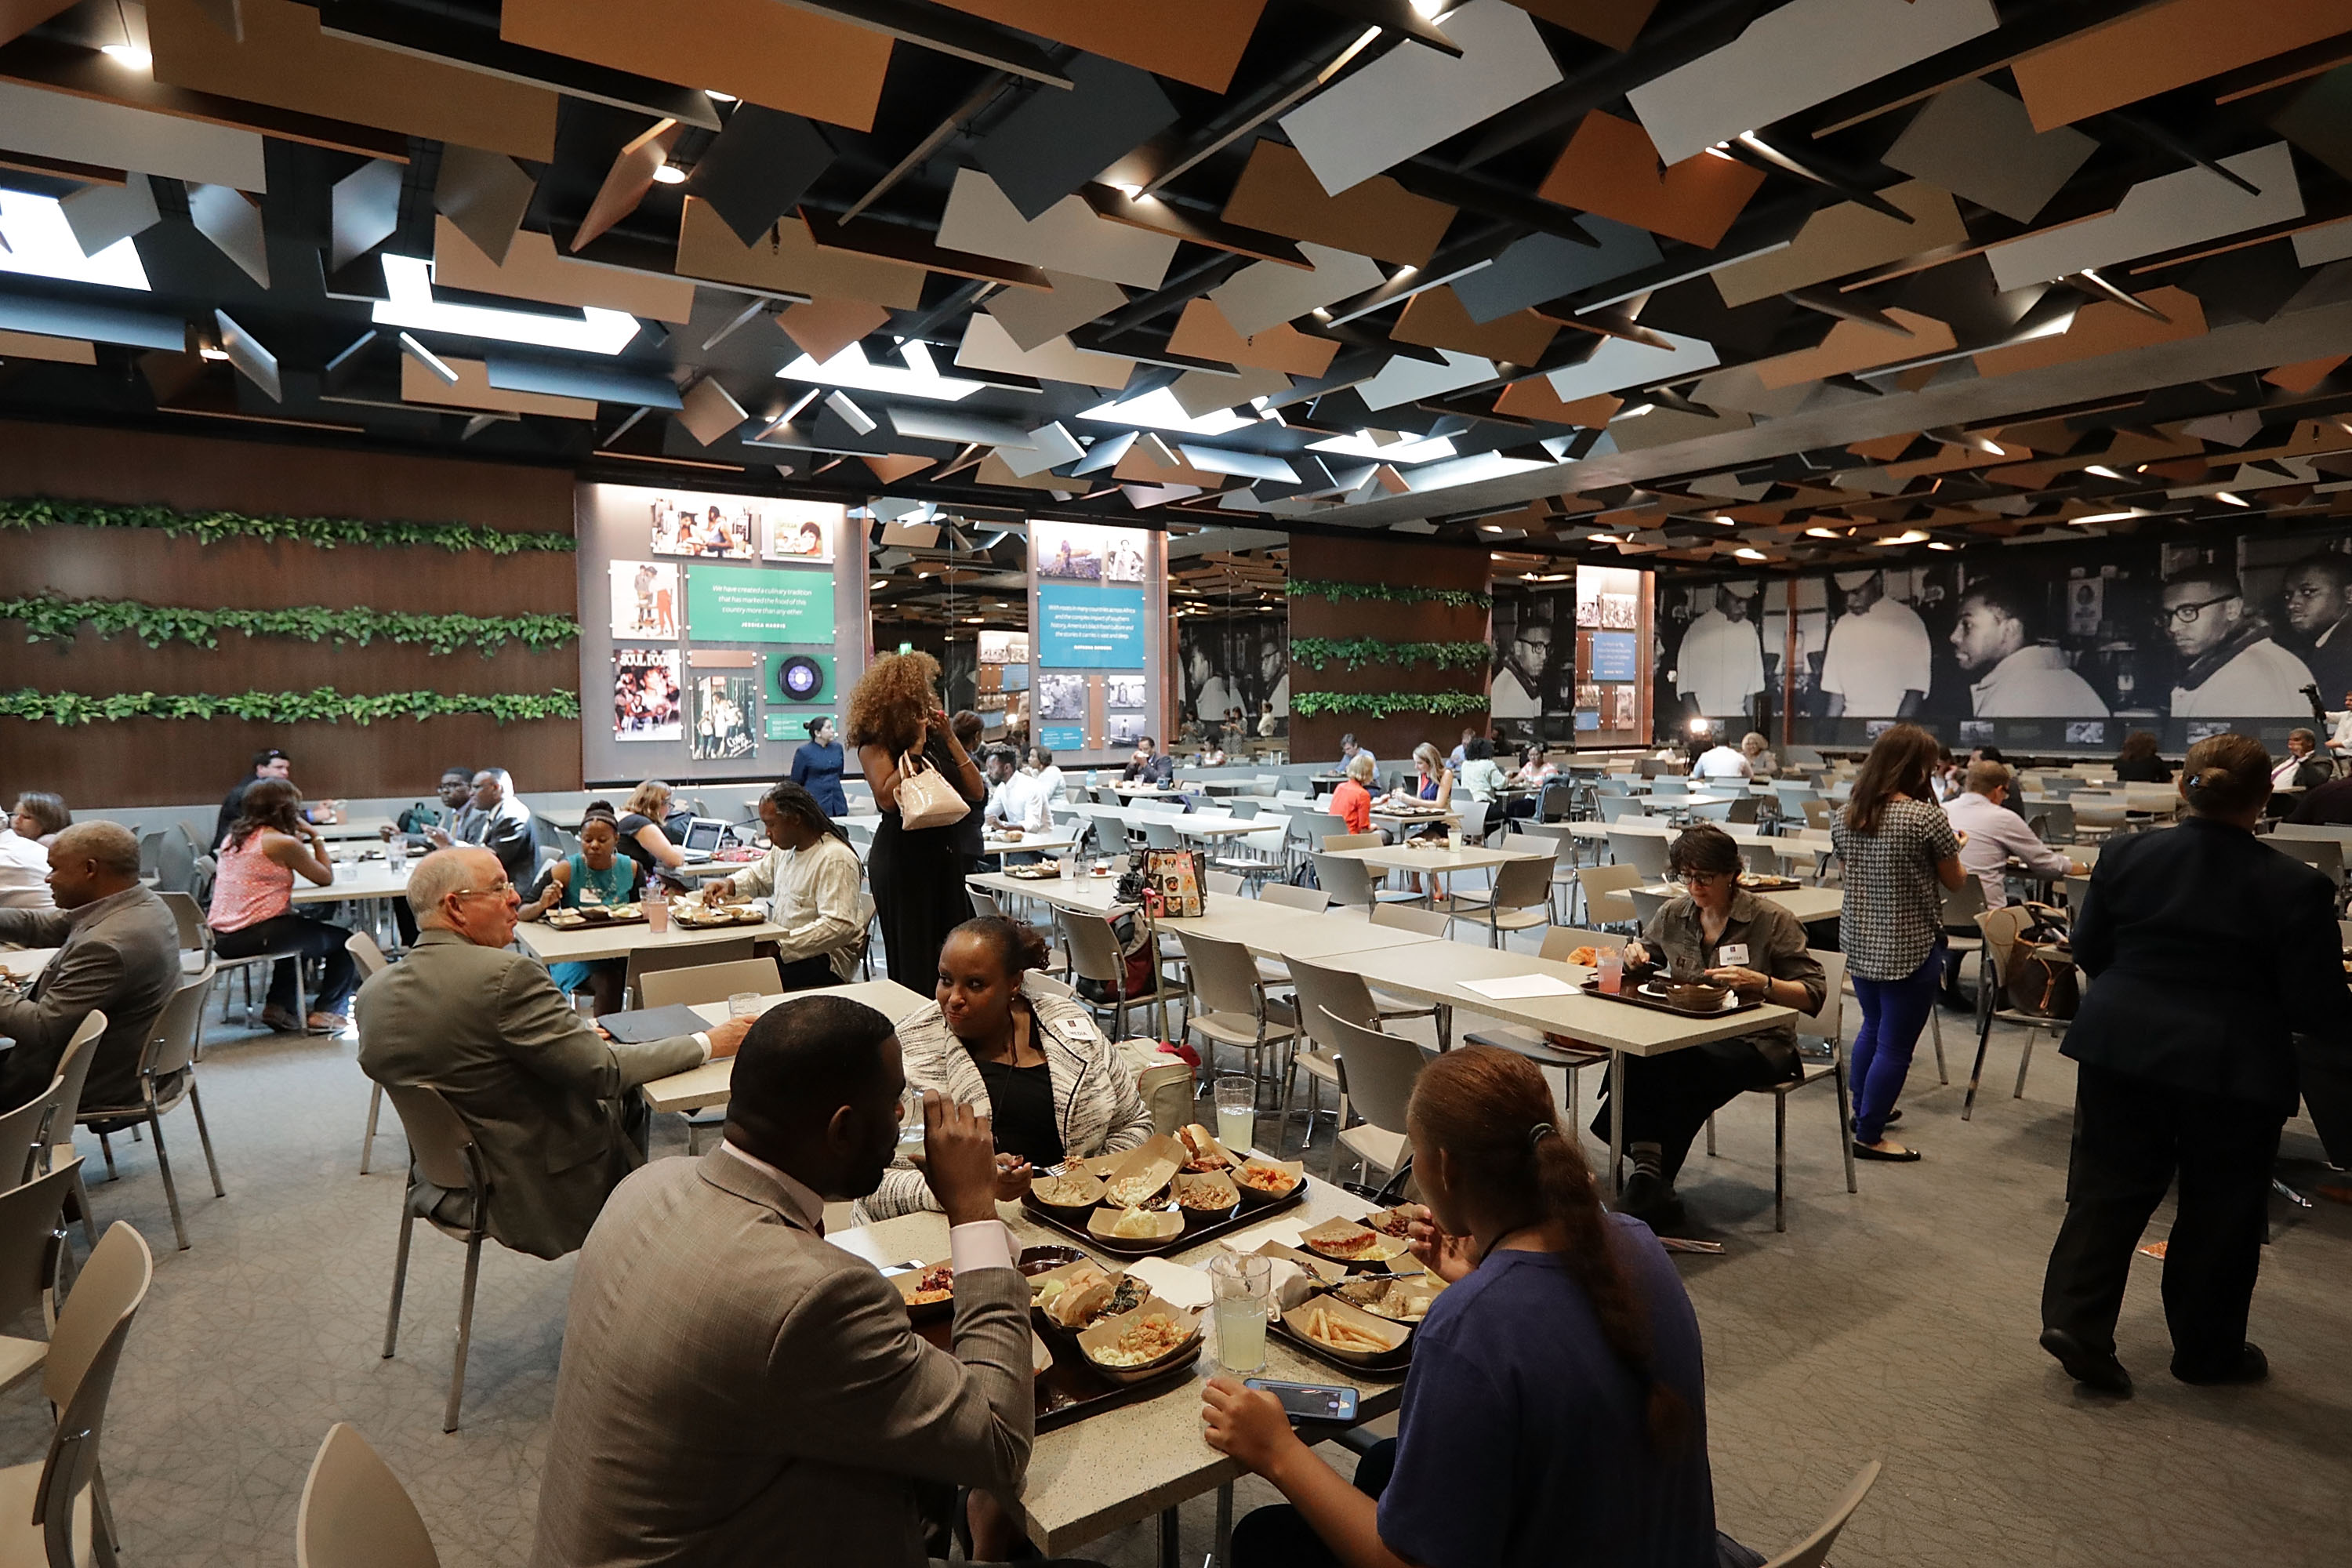 Guests sample dishes like Son-of-a-Gun stew, pan-roasted oysters, smoked haddock, corn croquettes with a gribiche sauce, slow cooked collards and other traditional foods at the Smithsonian's National Museum of African American History and Culture's Sweet Home Cafe Sept. 14, 2016 in Washington, D.C.